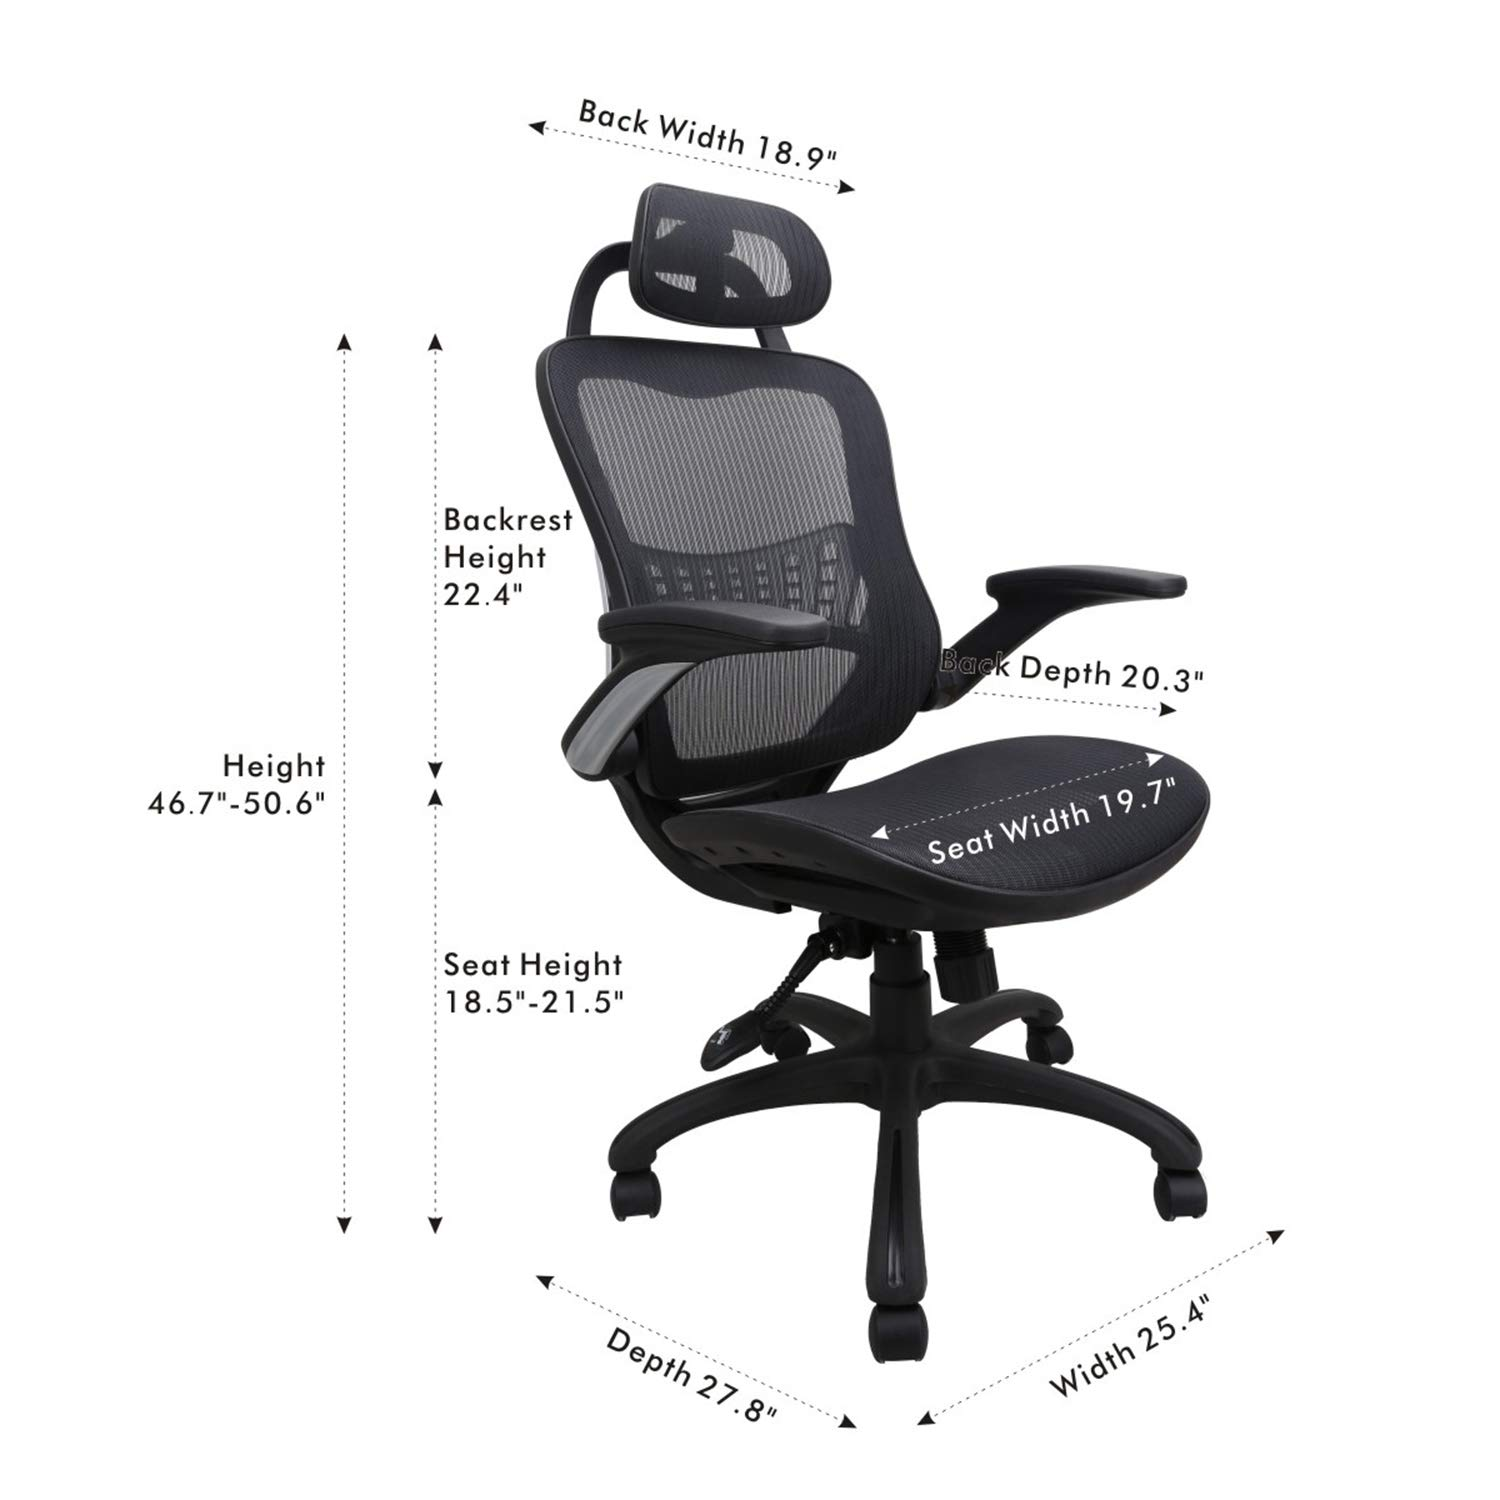 Komene Ergonomic Chairs for Office &Home: Passed BIFMA/SGS Weight Support Over 300Ibs,The Most Comfortable Mesh Cushion&High Back-Adjustable Headrest Backrest,Flip-up Armrests,360-Degree Swivel Chairs by Komene (Image #4)